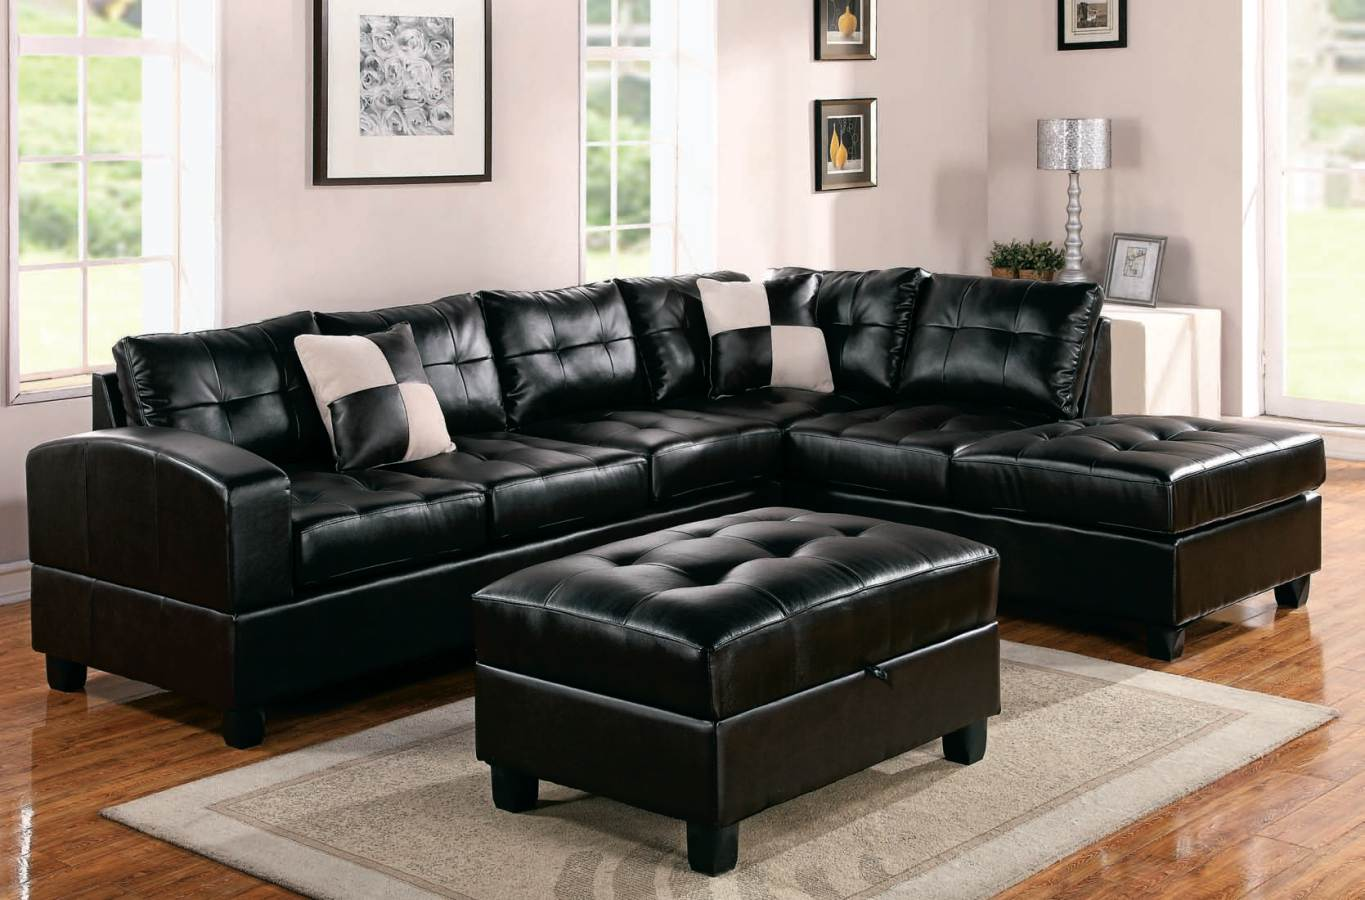 pile living leather storage chaise underneath black choice for perfectly on room lounge with couches carpet and placed gray couch sectional small